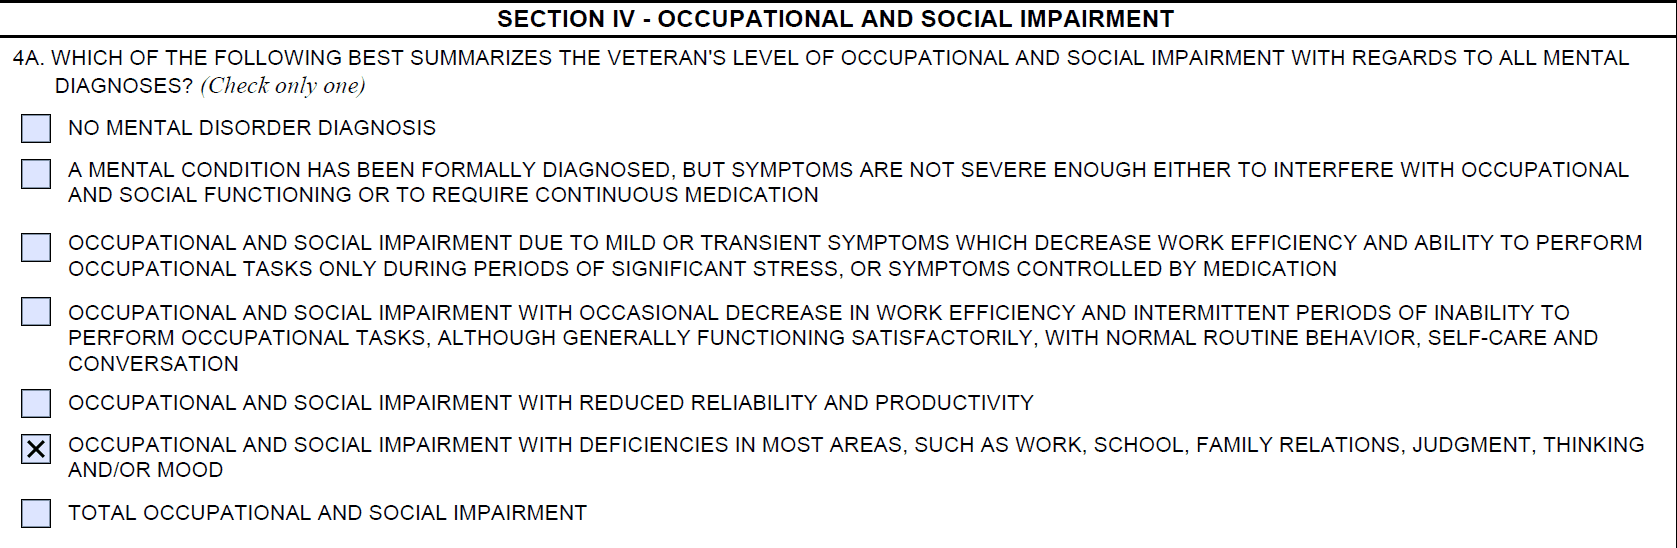 PTSD Review DBQ - Occupational and Social Impairment